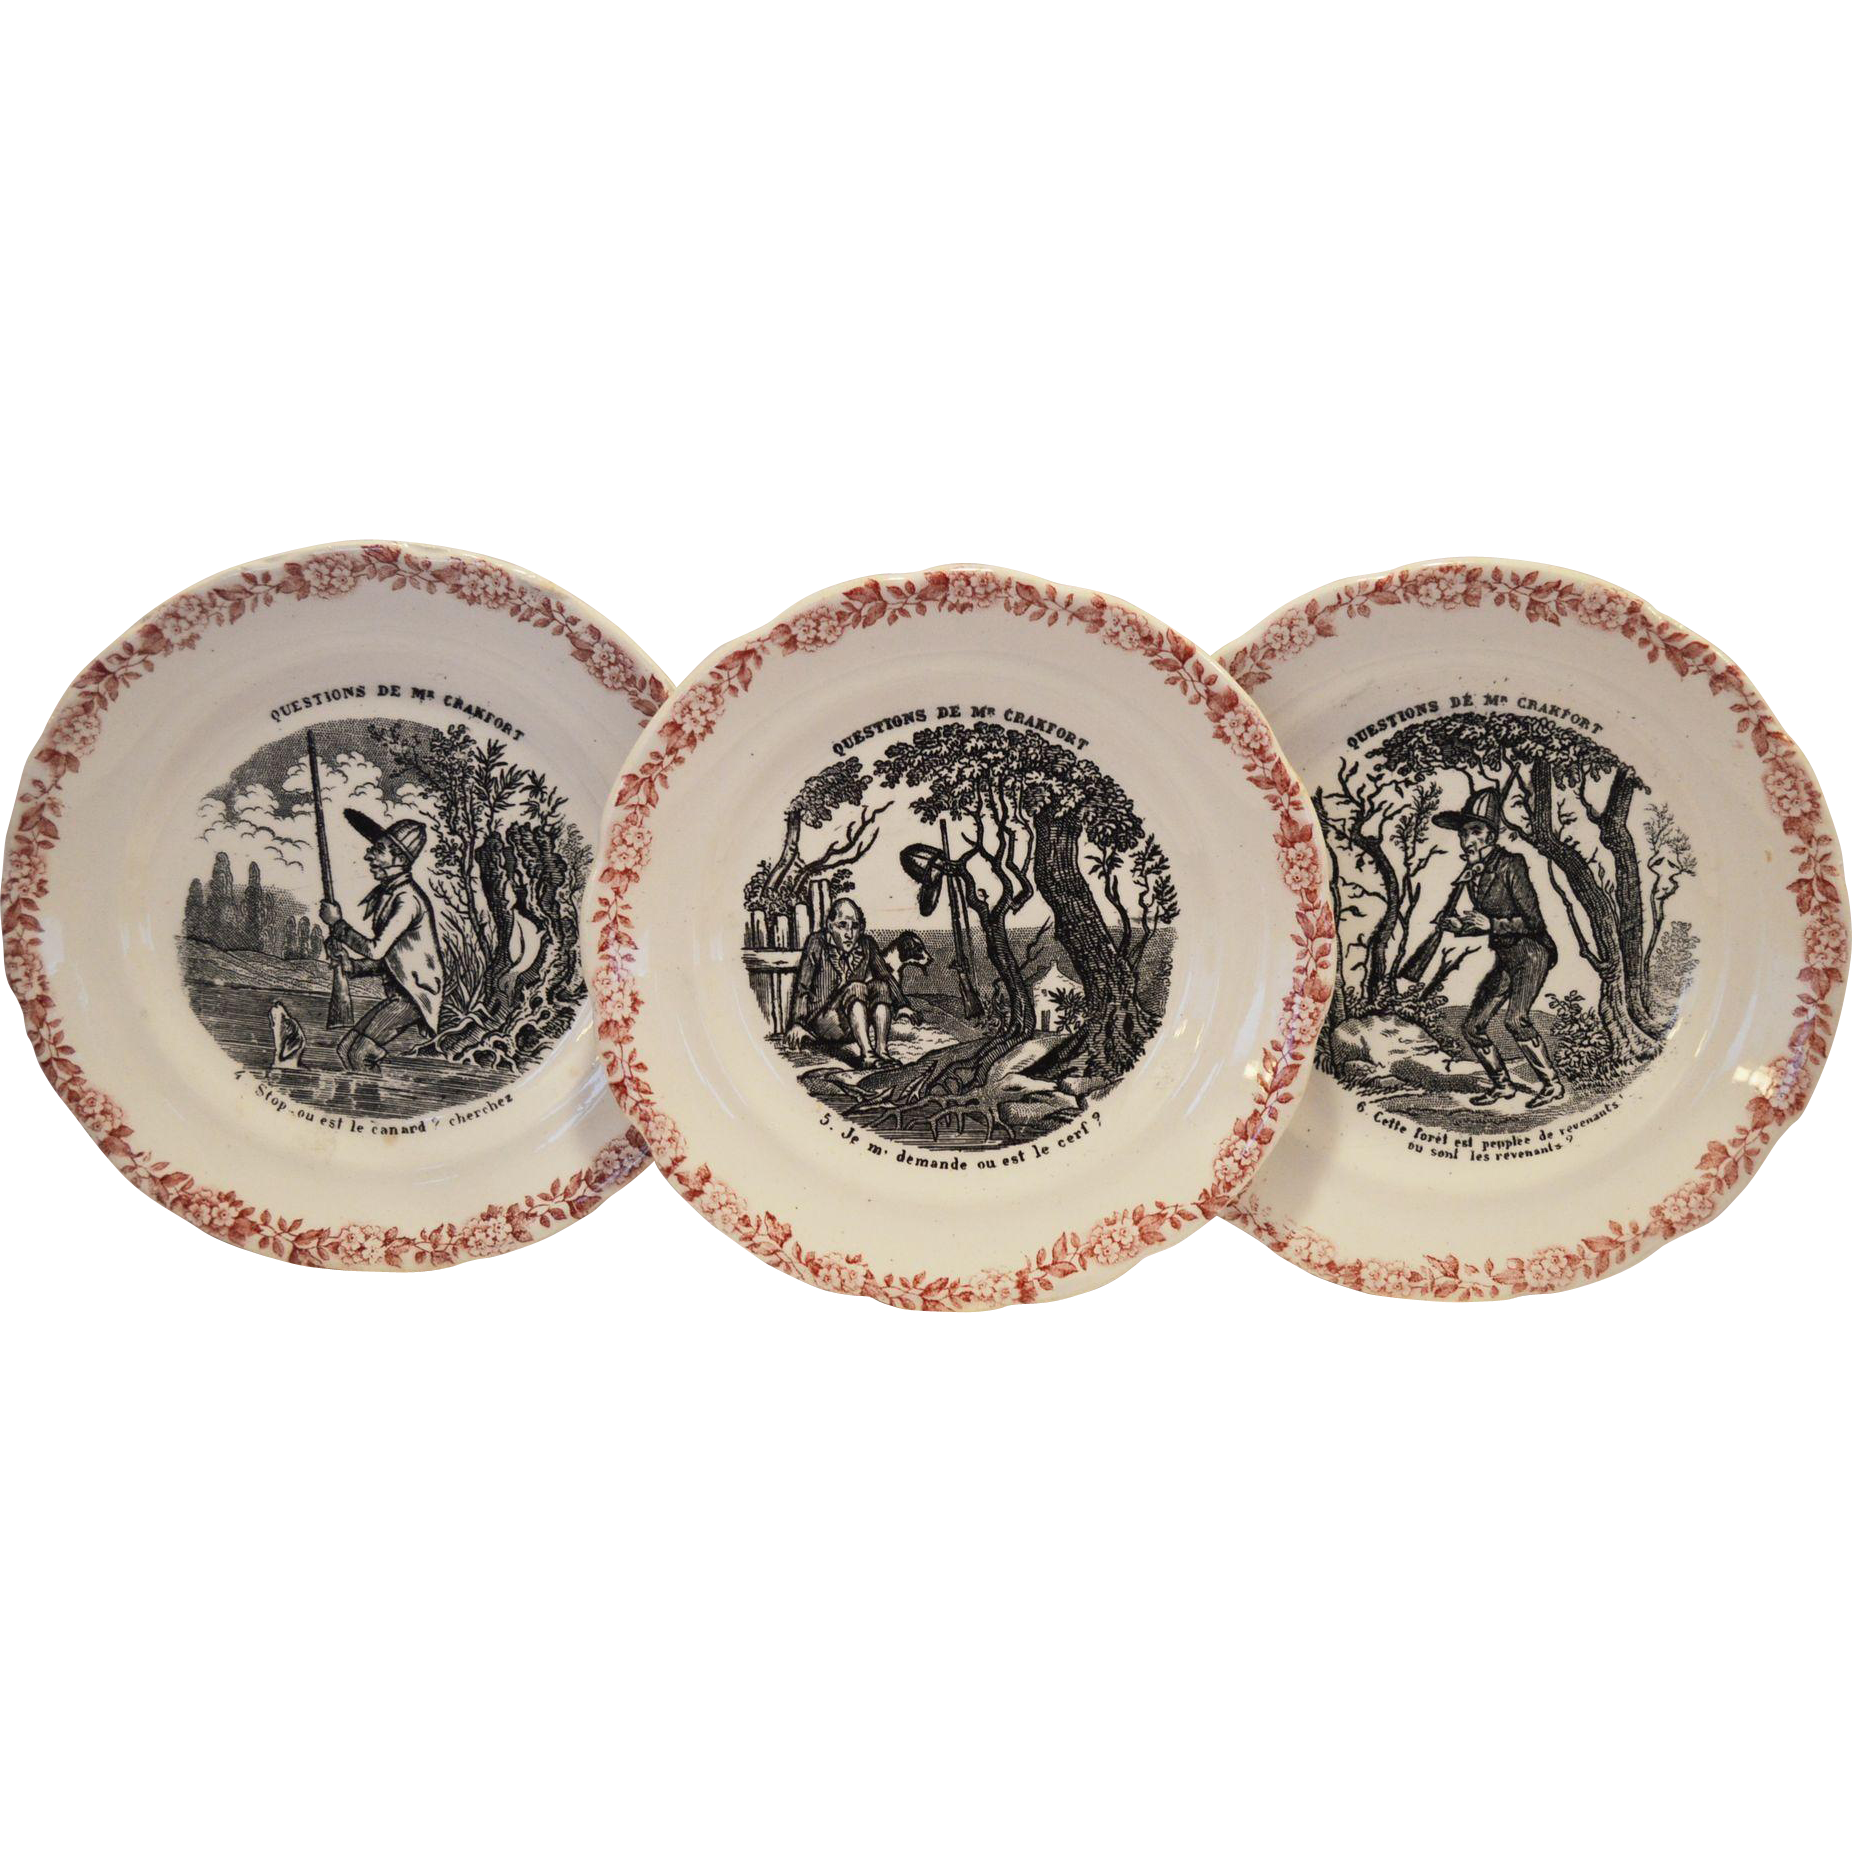 Wonderful French Faience Plates ~ Hunting Scenes~ 4,5 6  from Series Medailles d'Or Questions de Mr. Crakfort ~ Hautin & Boulanger choisy le roi France 1875-1900